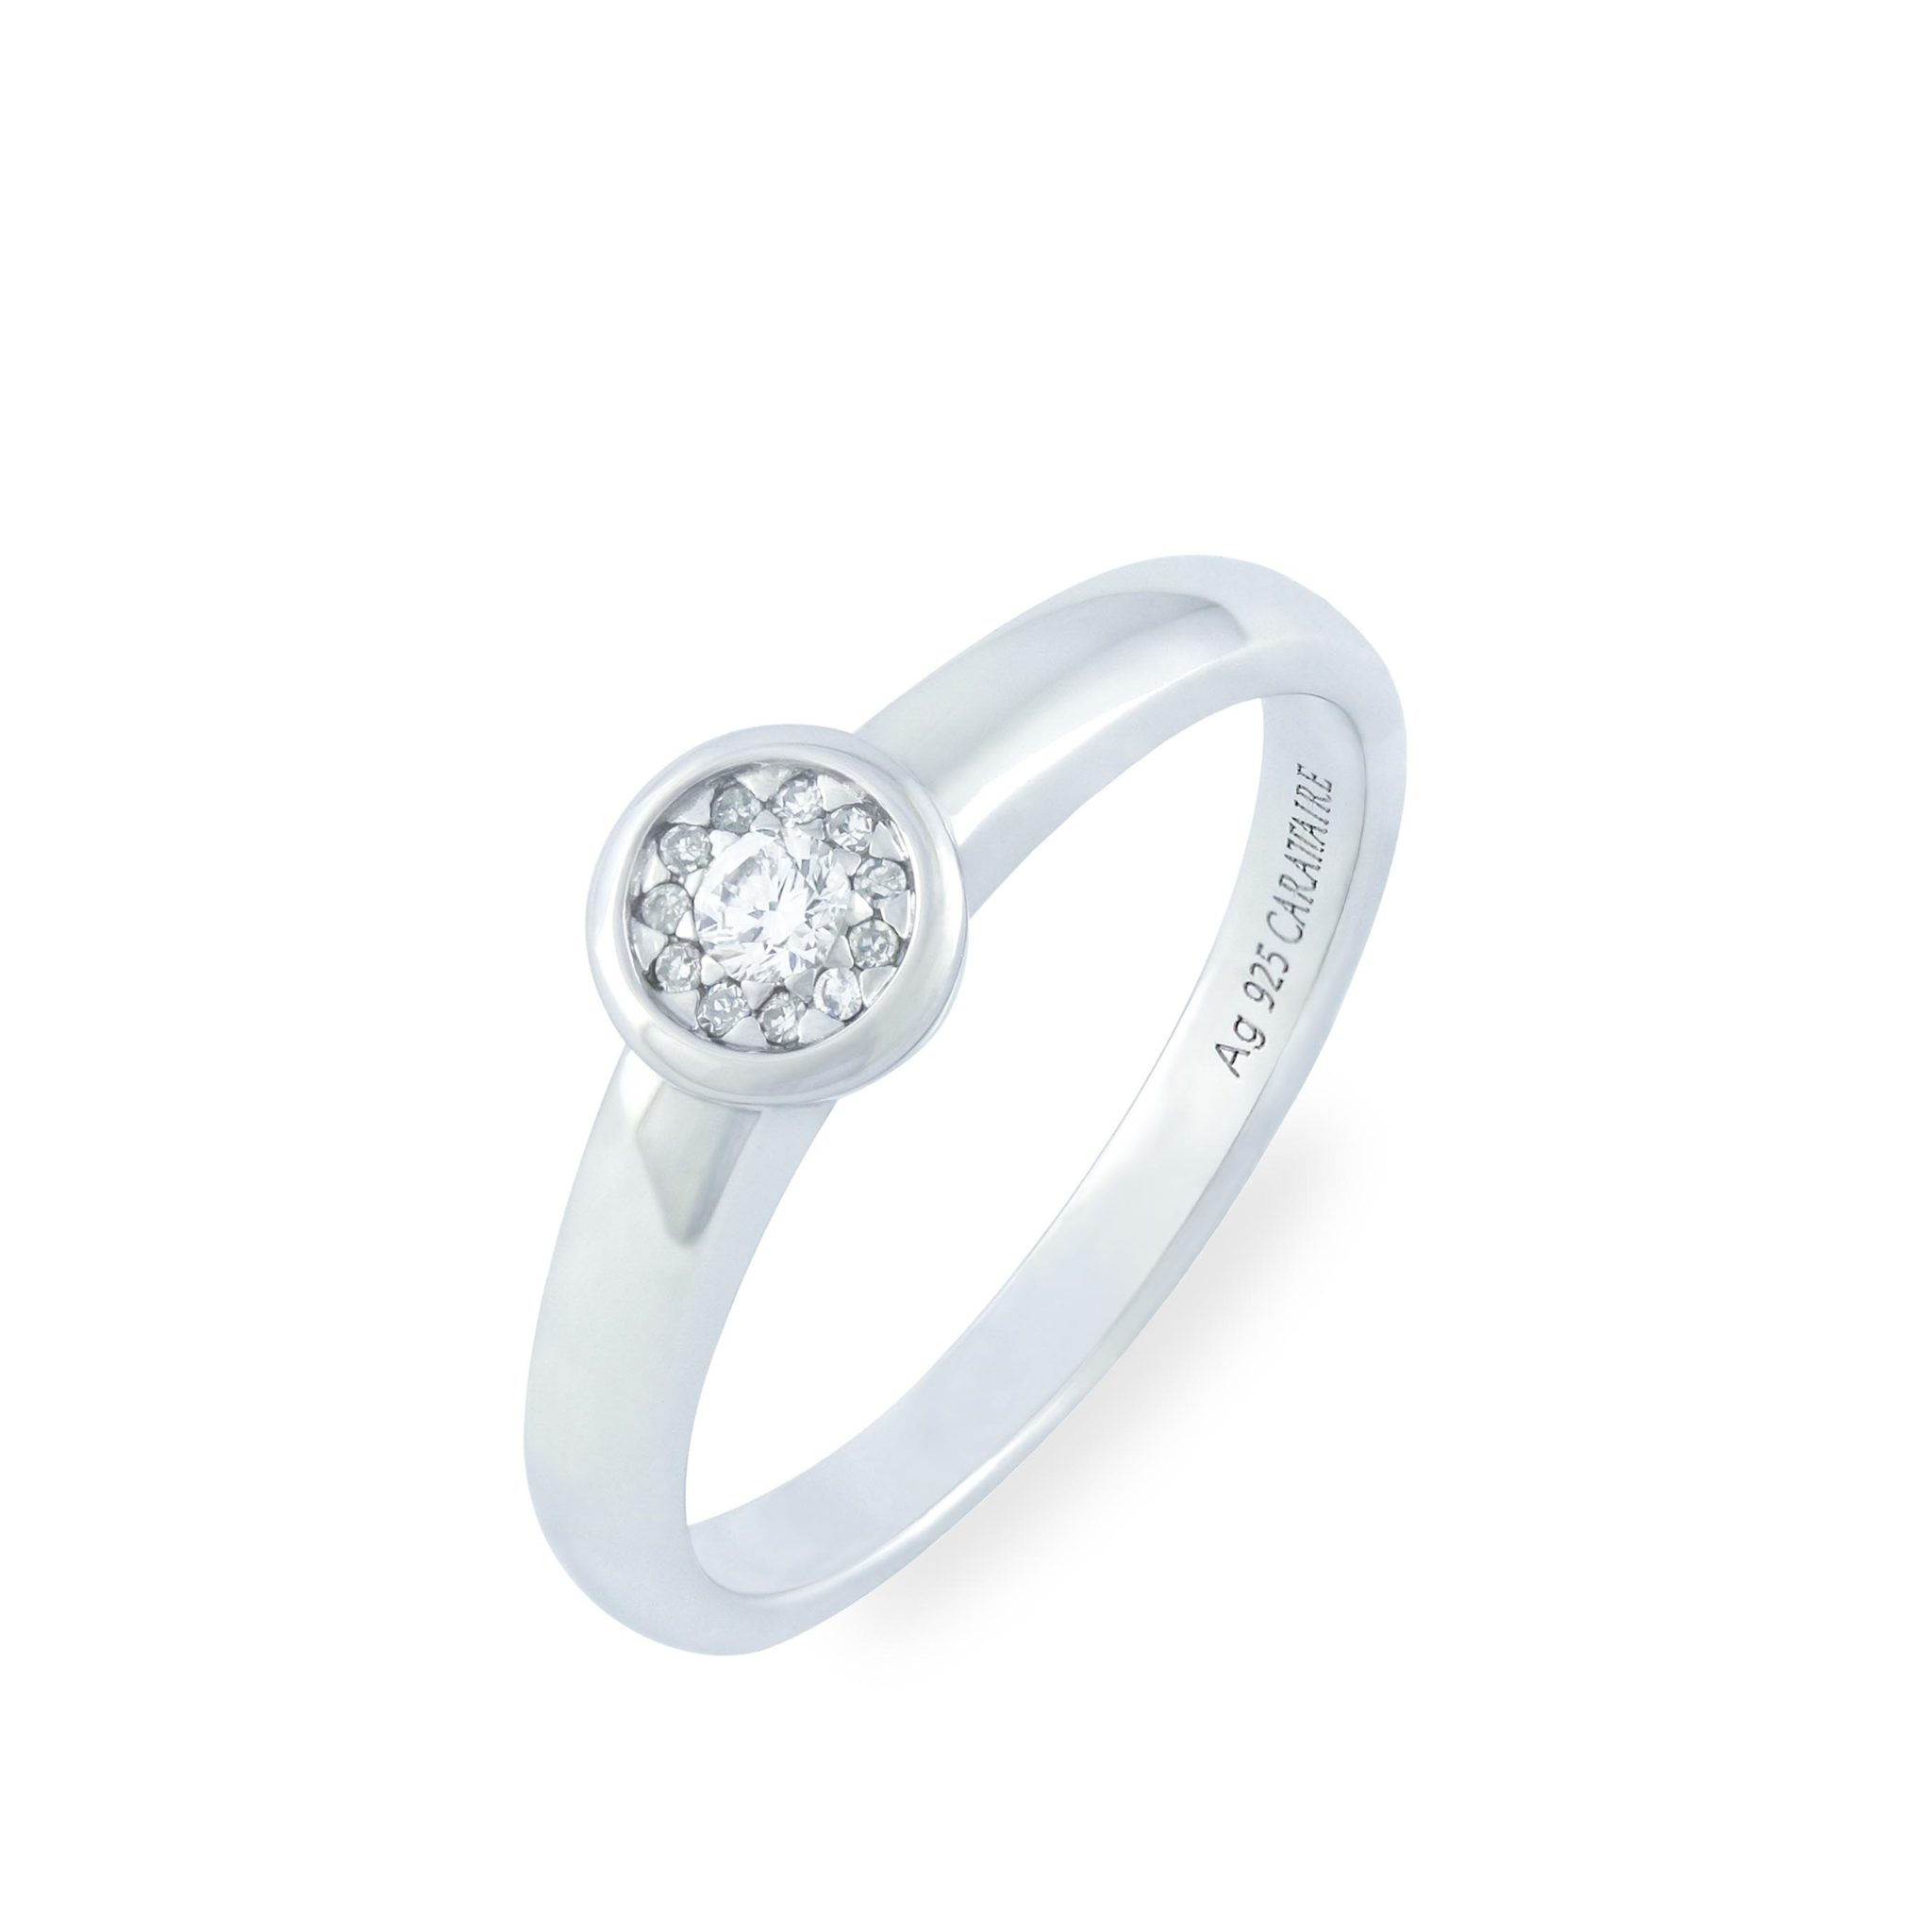 cut bestsellers rings marquise diamondland small diamonds diamond jewelry with beautiful ring